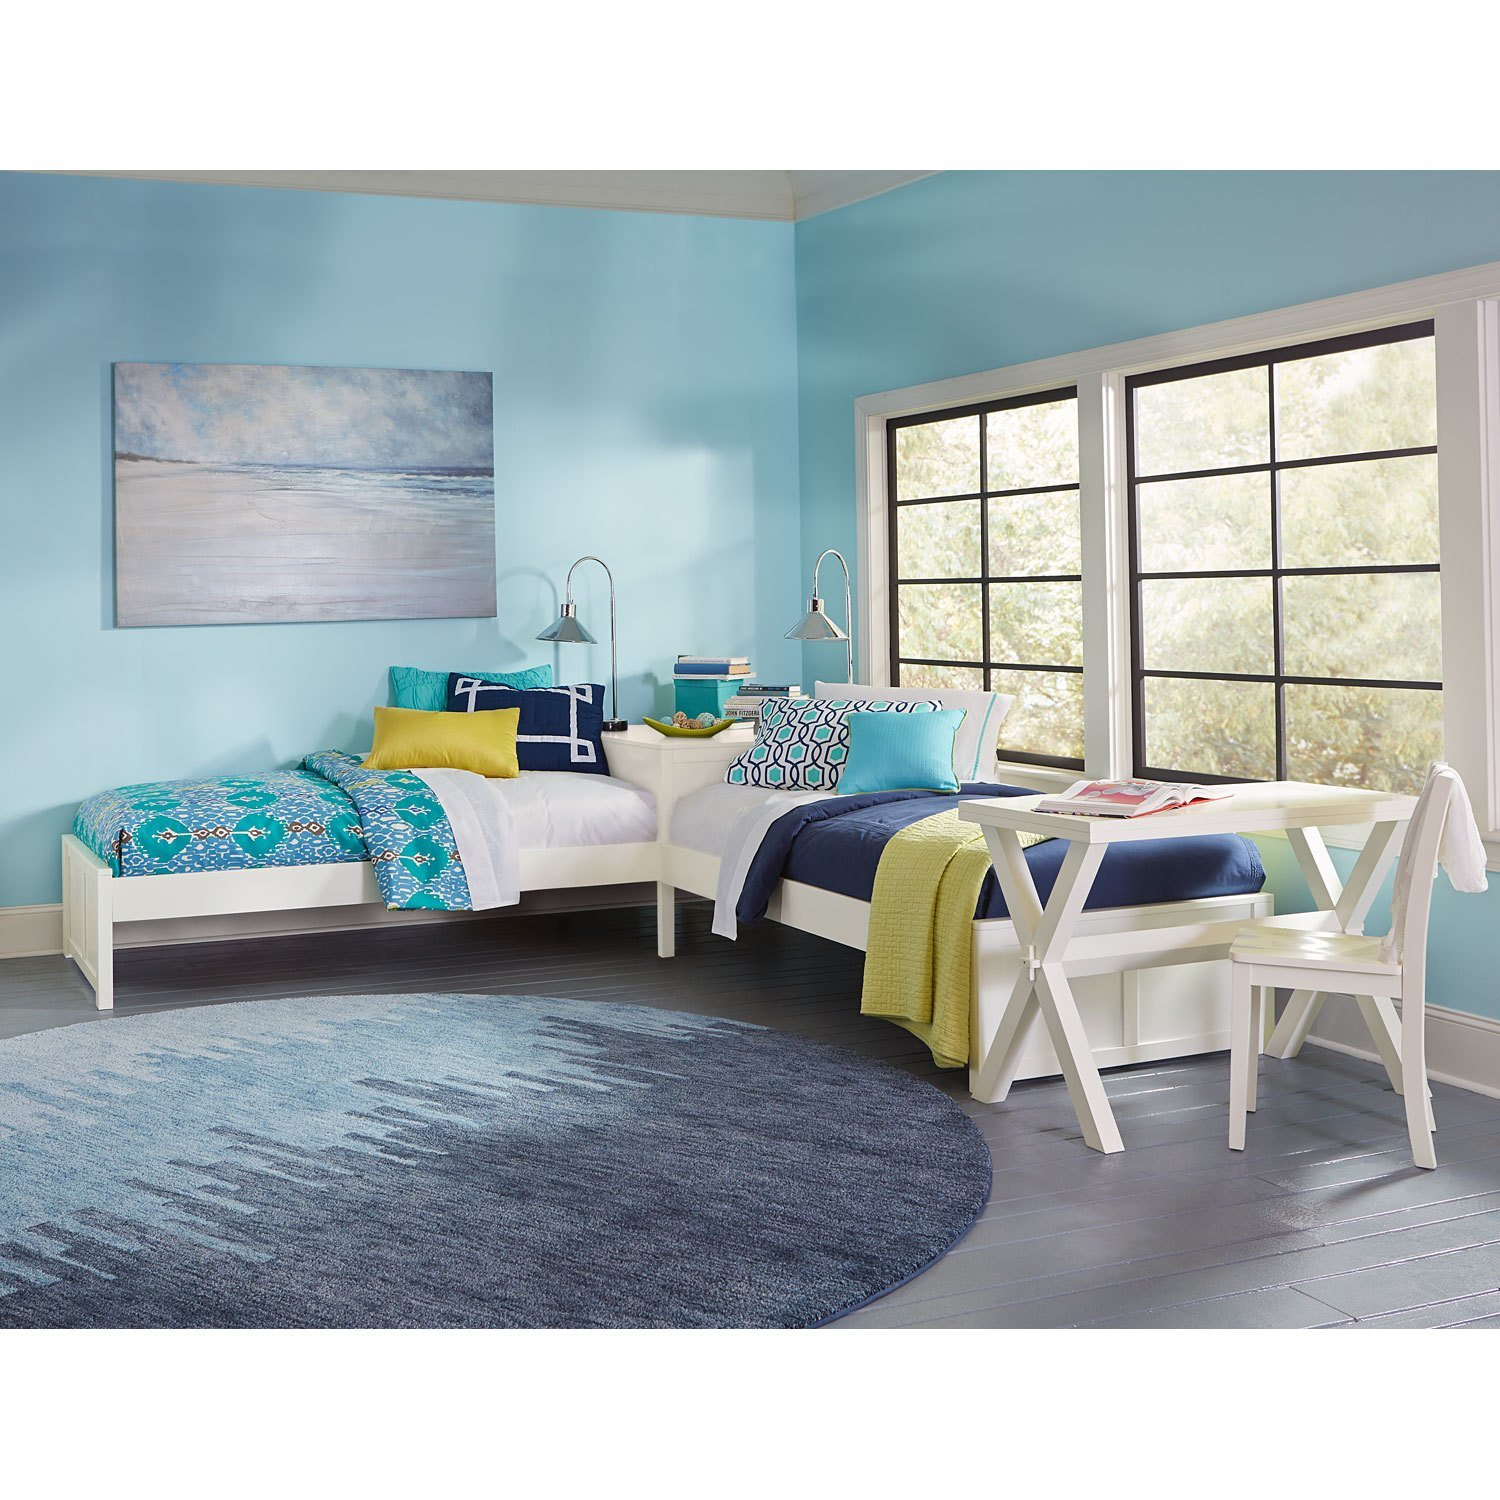 Best Pulse White L Shape Bed Ne Kids Standard Standard Beds With Pictures